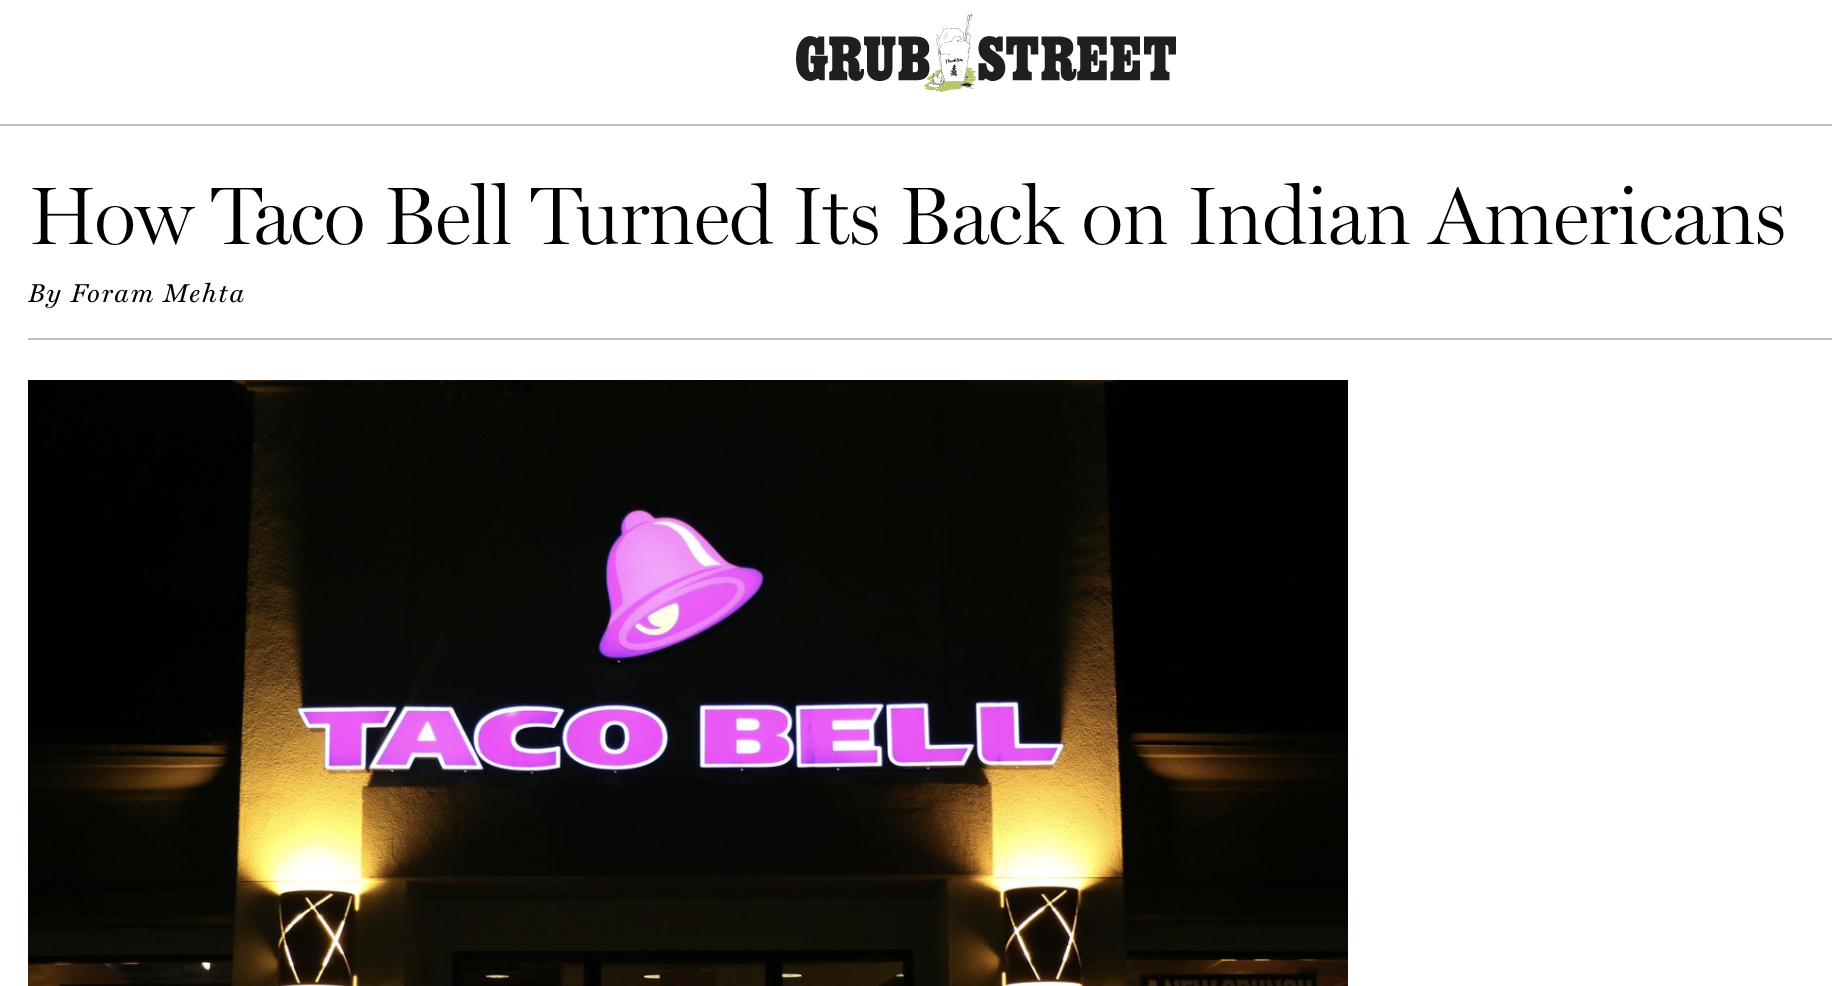 """An article on Grub Street explores """"How Taco Bell Turned Its Back on Indian Americans"""""""